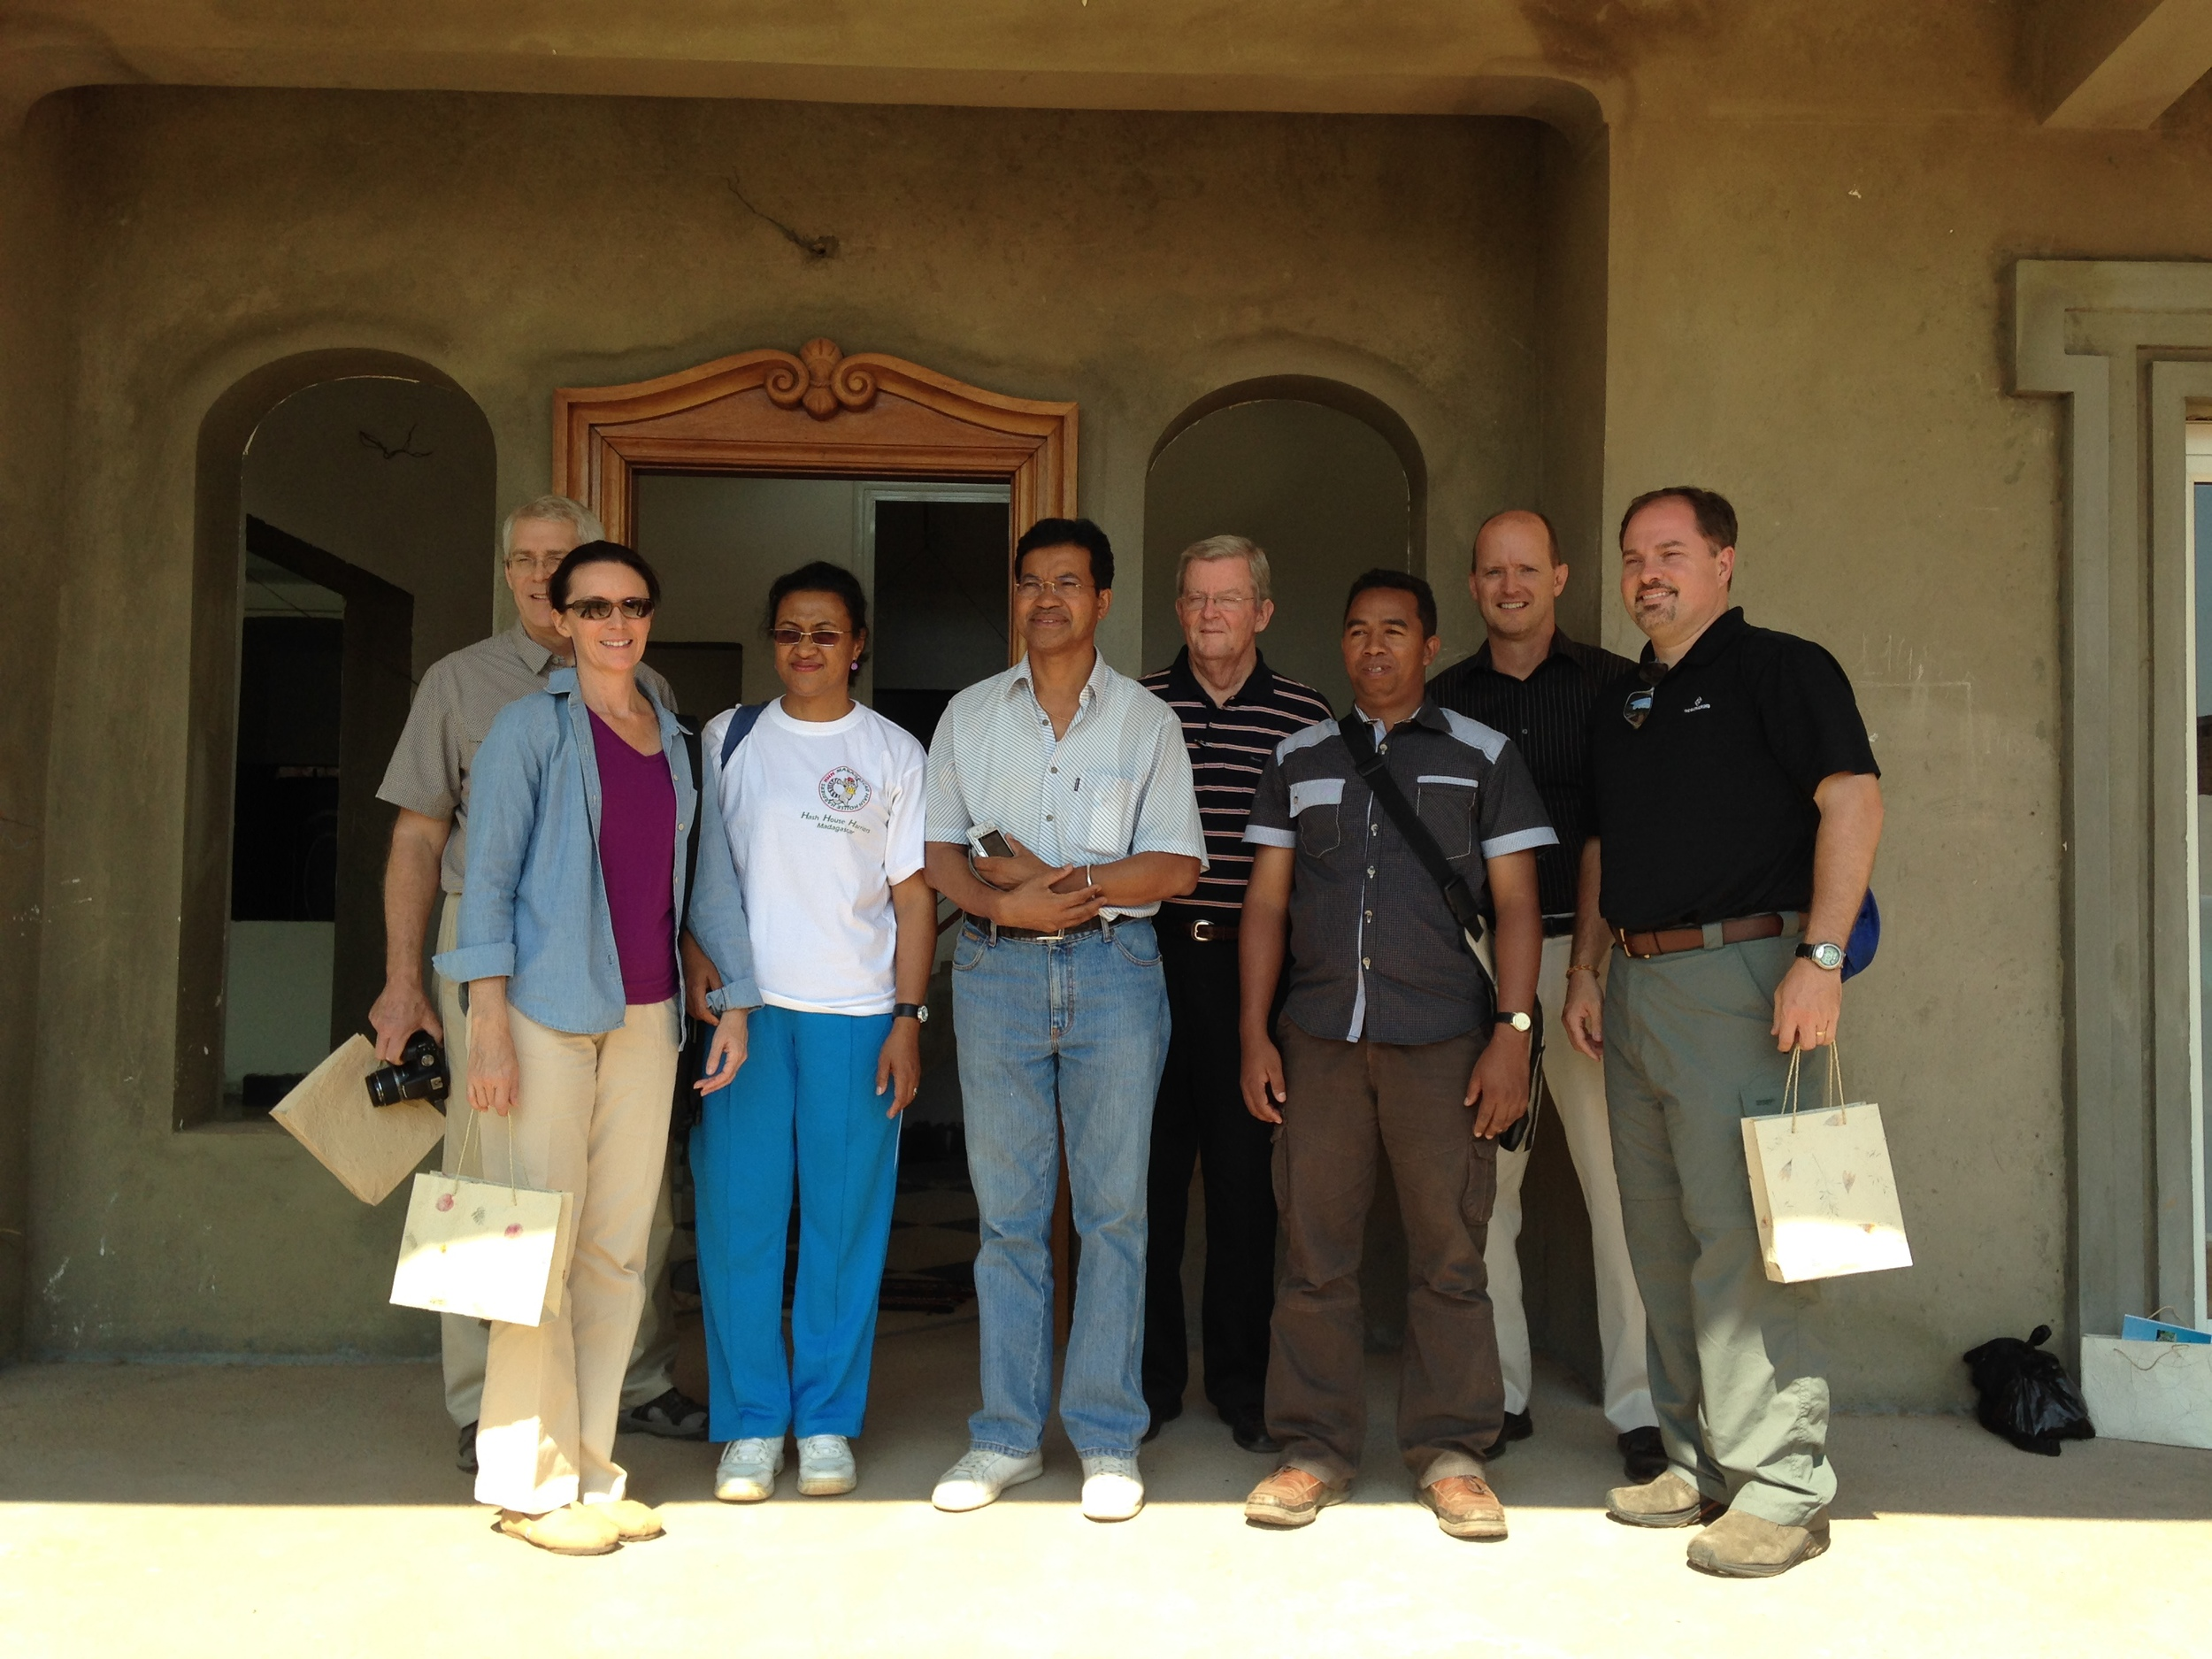 Malanto and husband Lanto (third & fourth from left) shared their vision to use this building of theirs as the first Christian Credit Union in Madagascar.